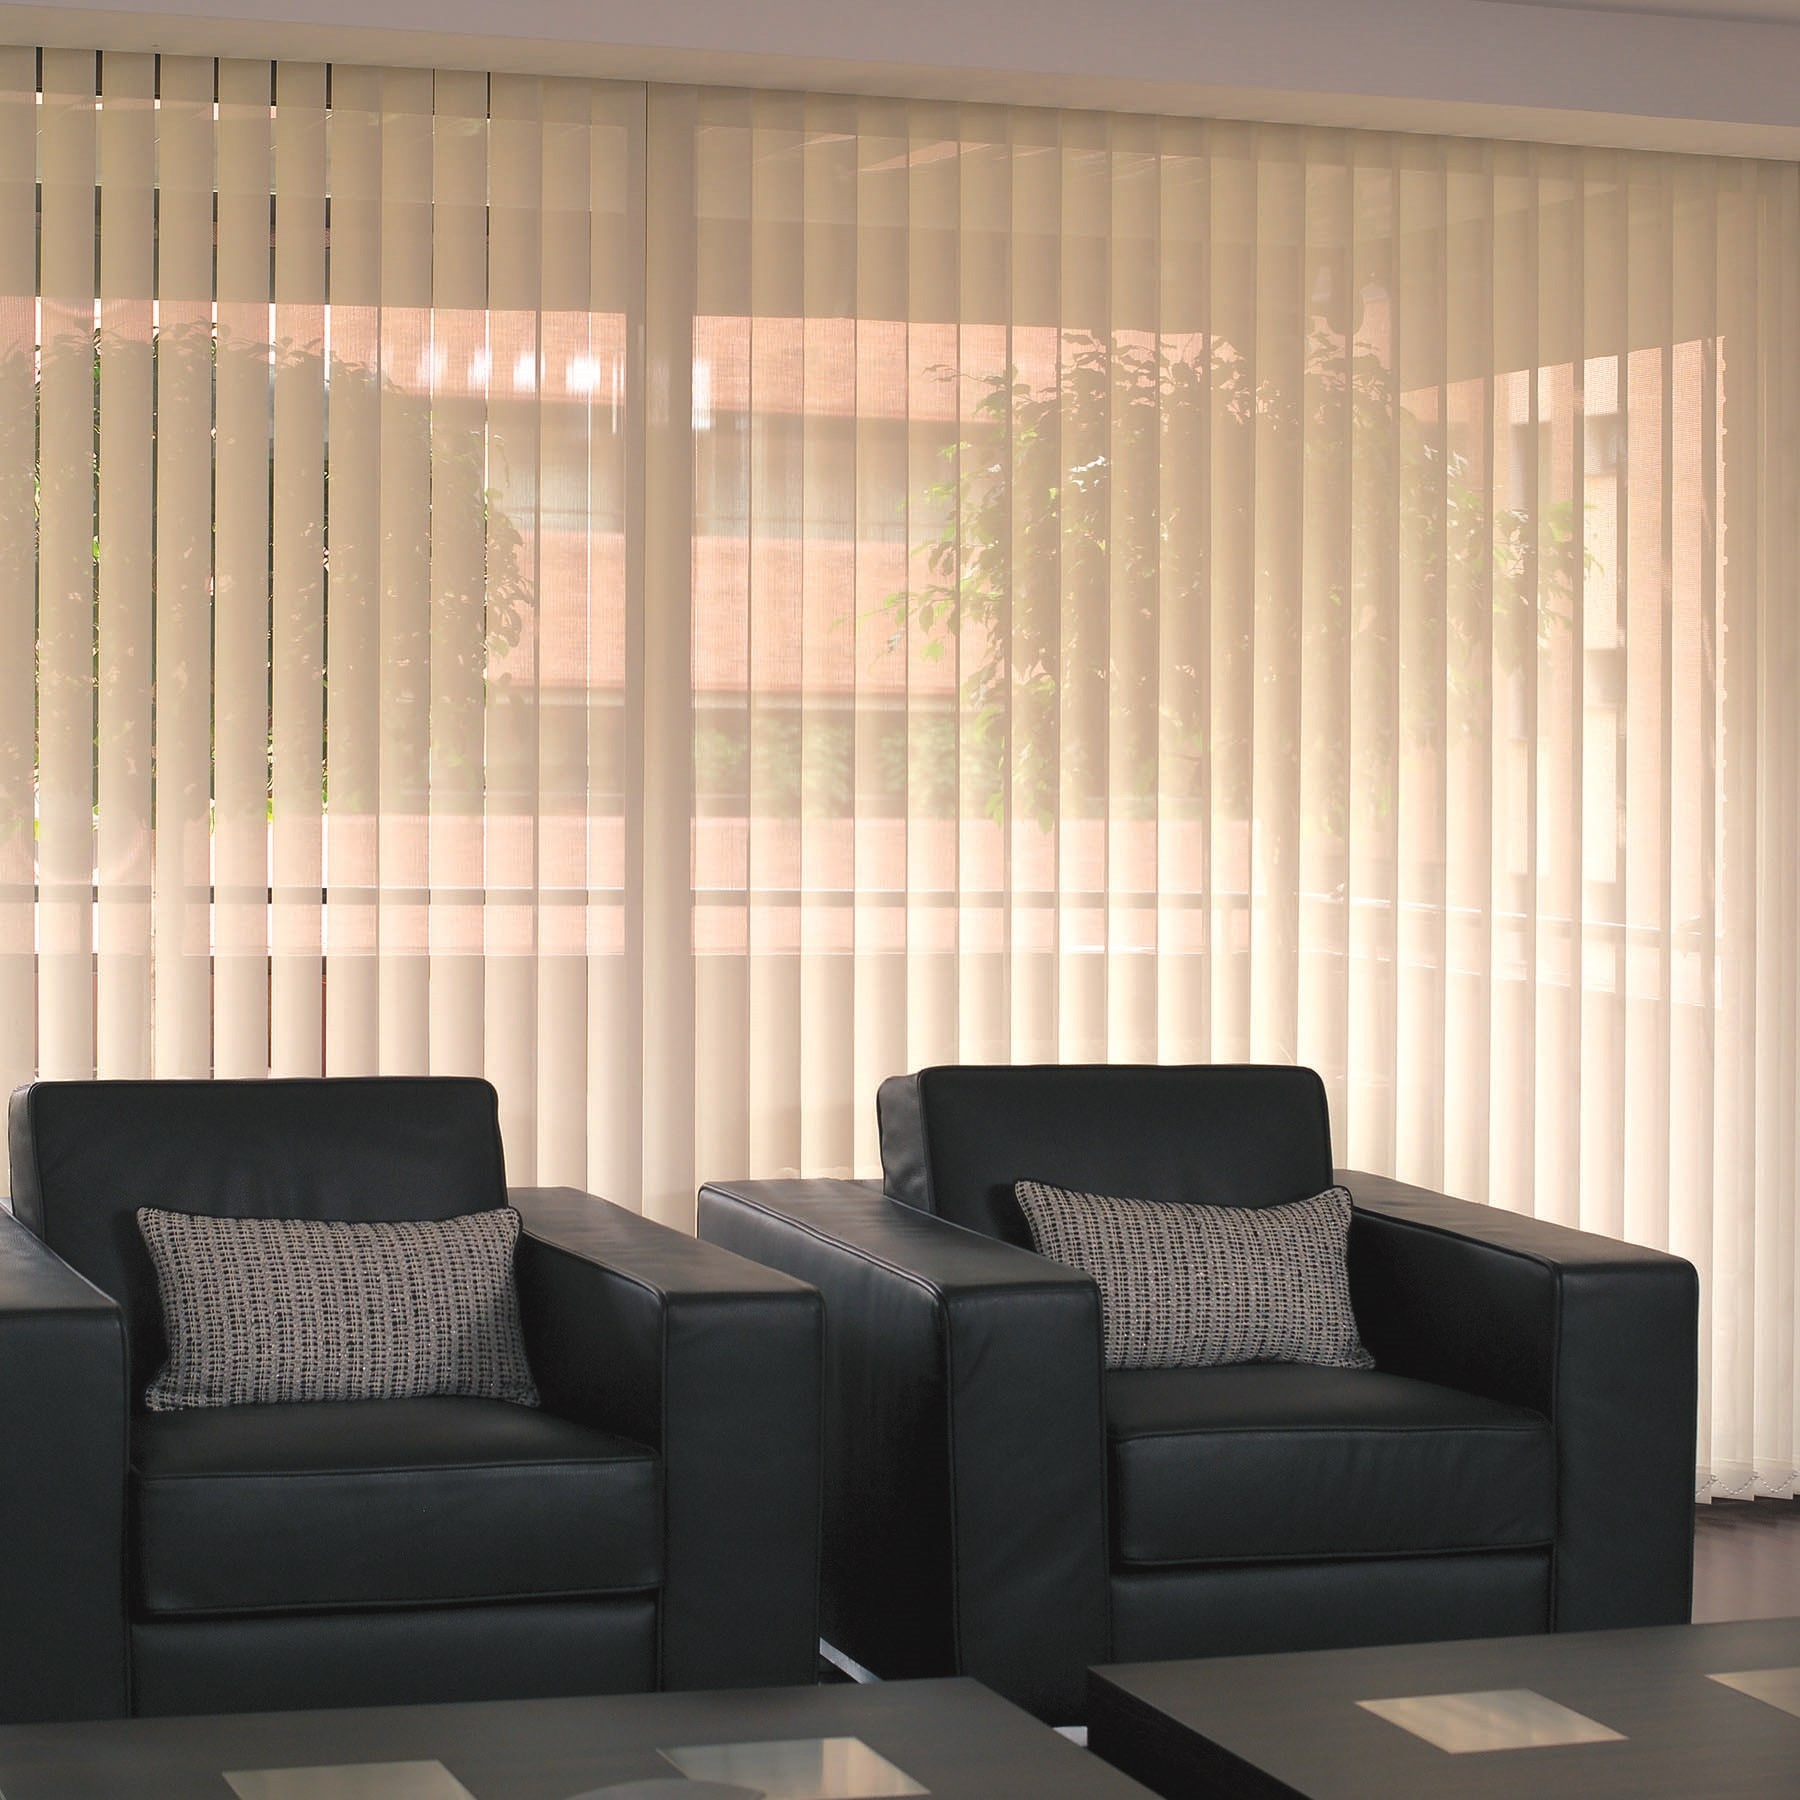 Fabric Vertical Blind